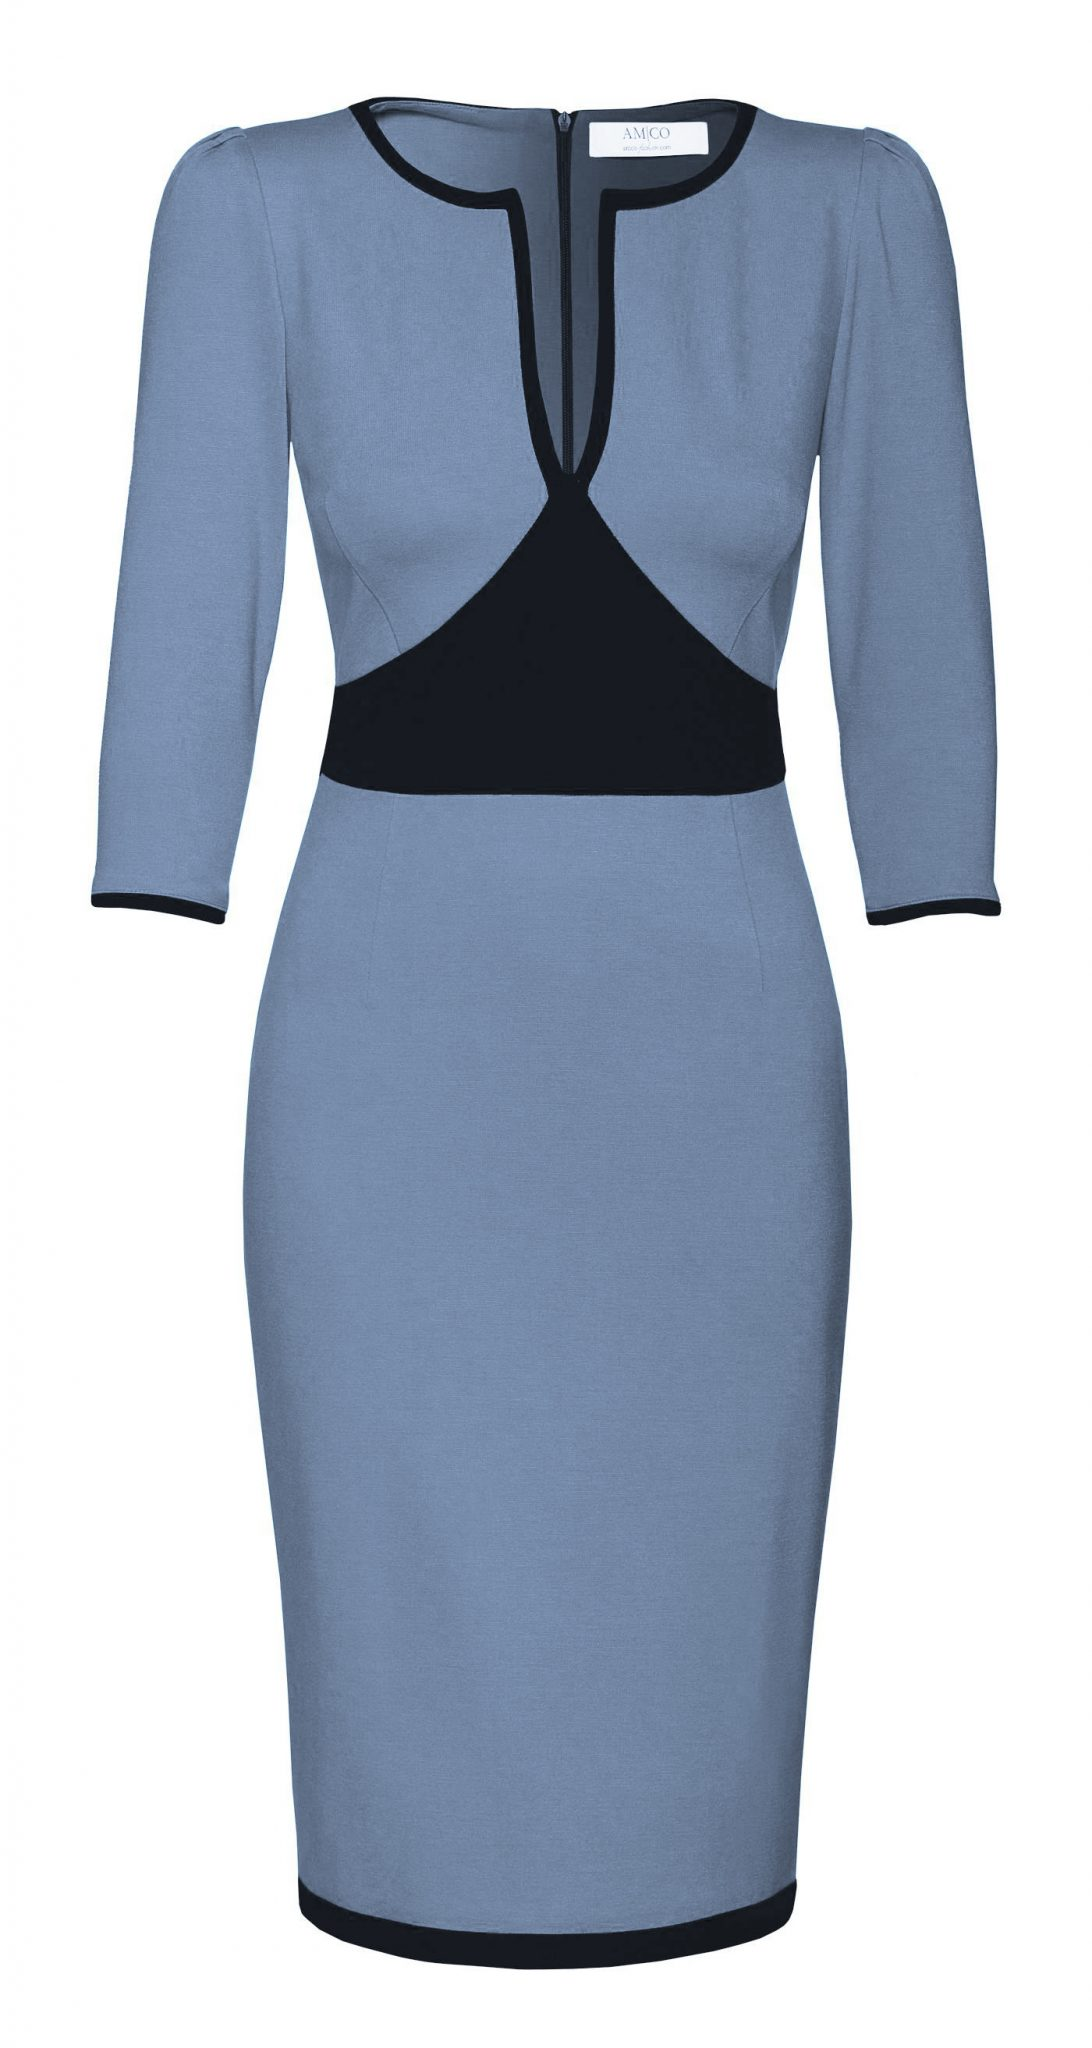 AMCO Fashion by Annett Möller | AMCO Aurelie Dress | Powder Blue | Taubenblau | sportliches Strechtkleid